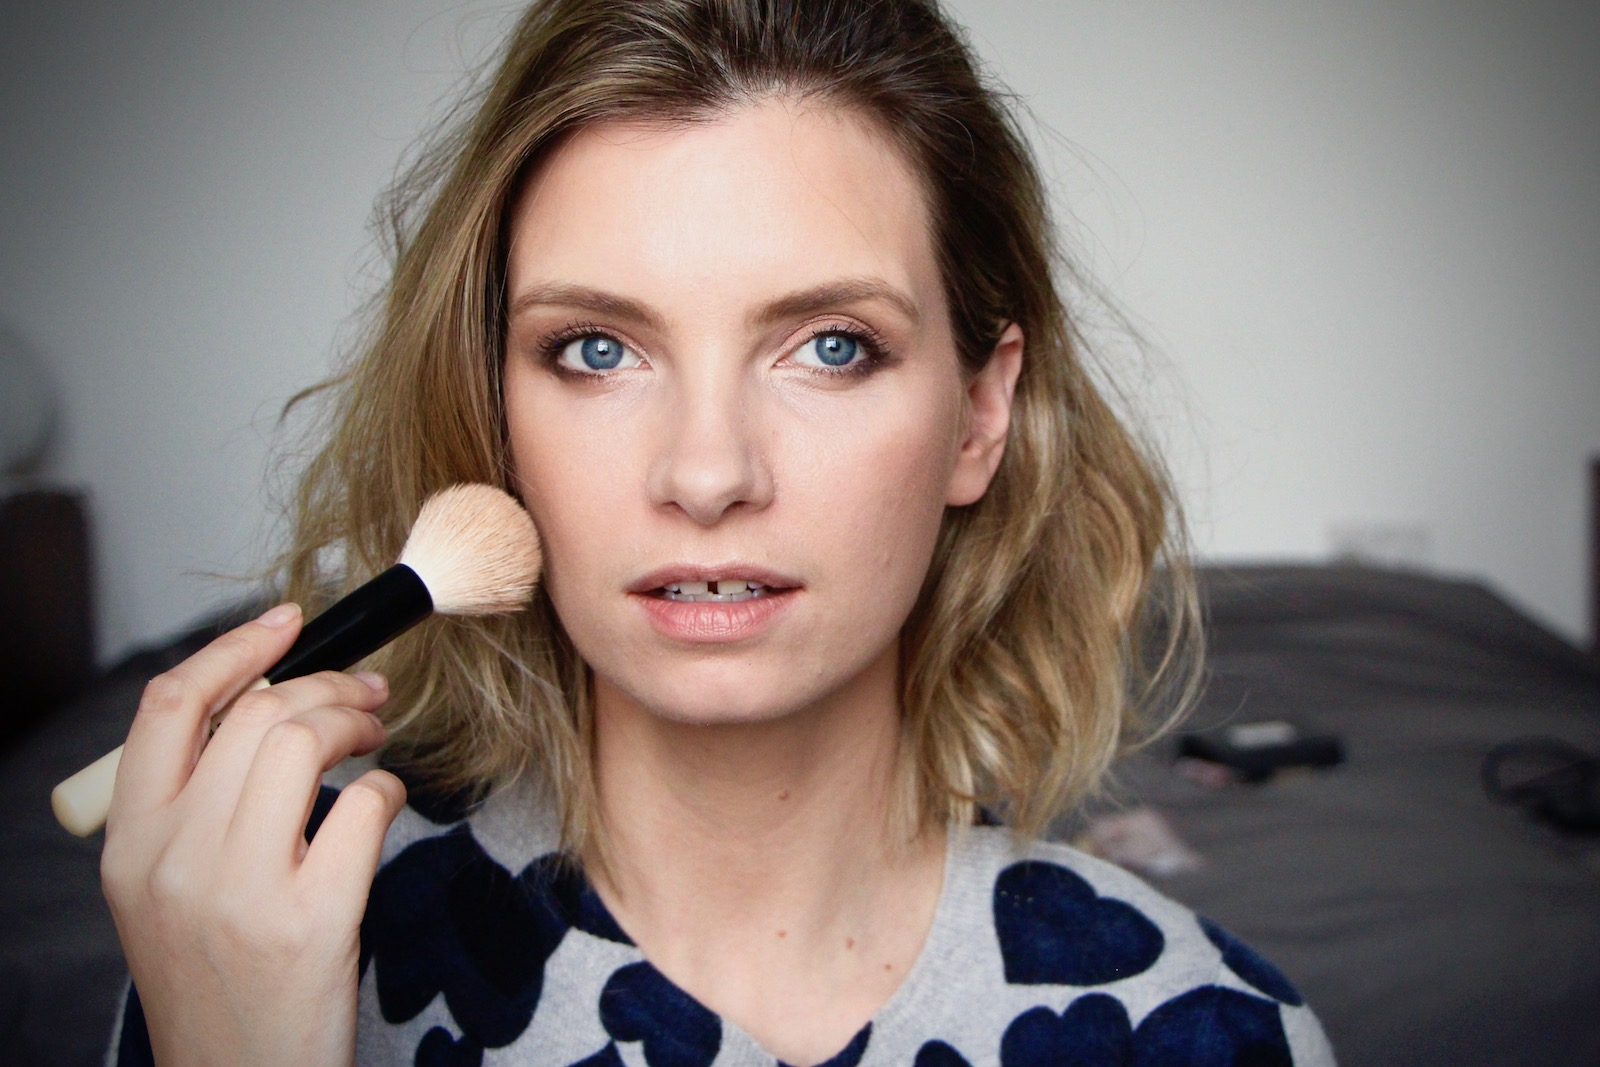 A Model Recommends - MINMAX Beauty | Beauty, Fashion